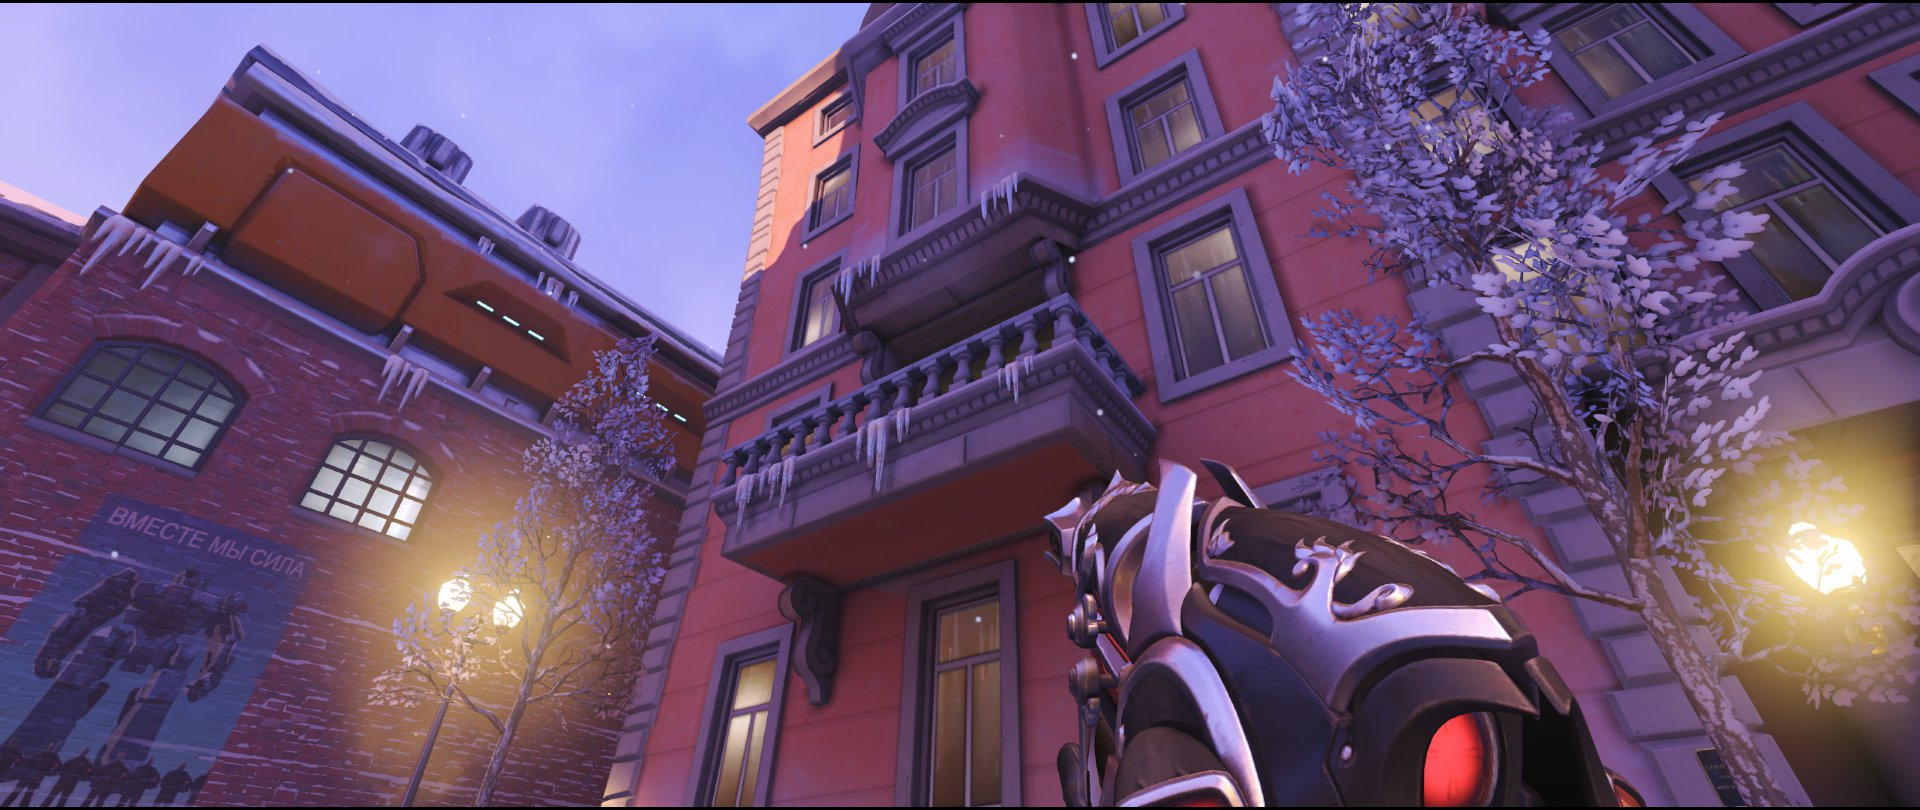 Manor balcony attack sniping spot Widowmaker Volskaya Industries Overwatch.jpg